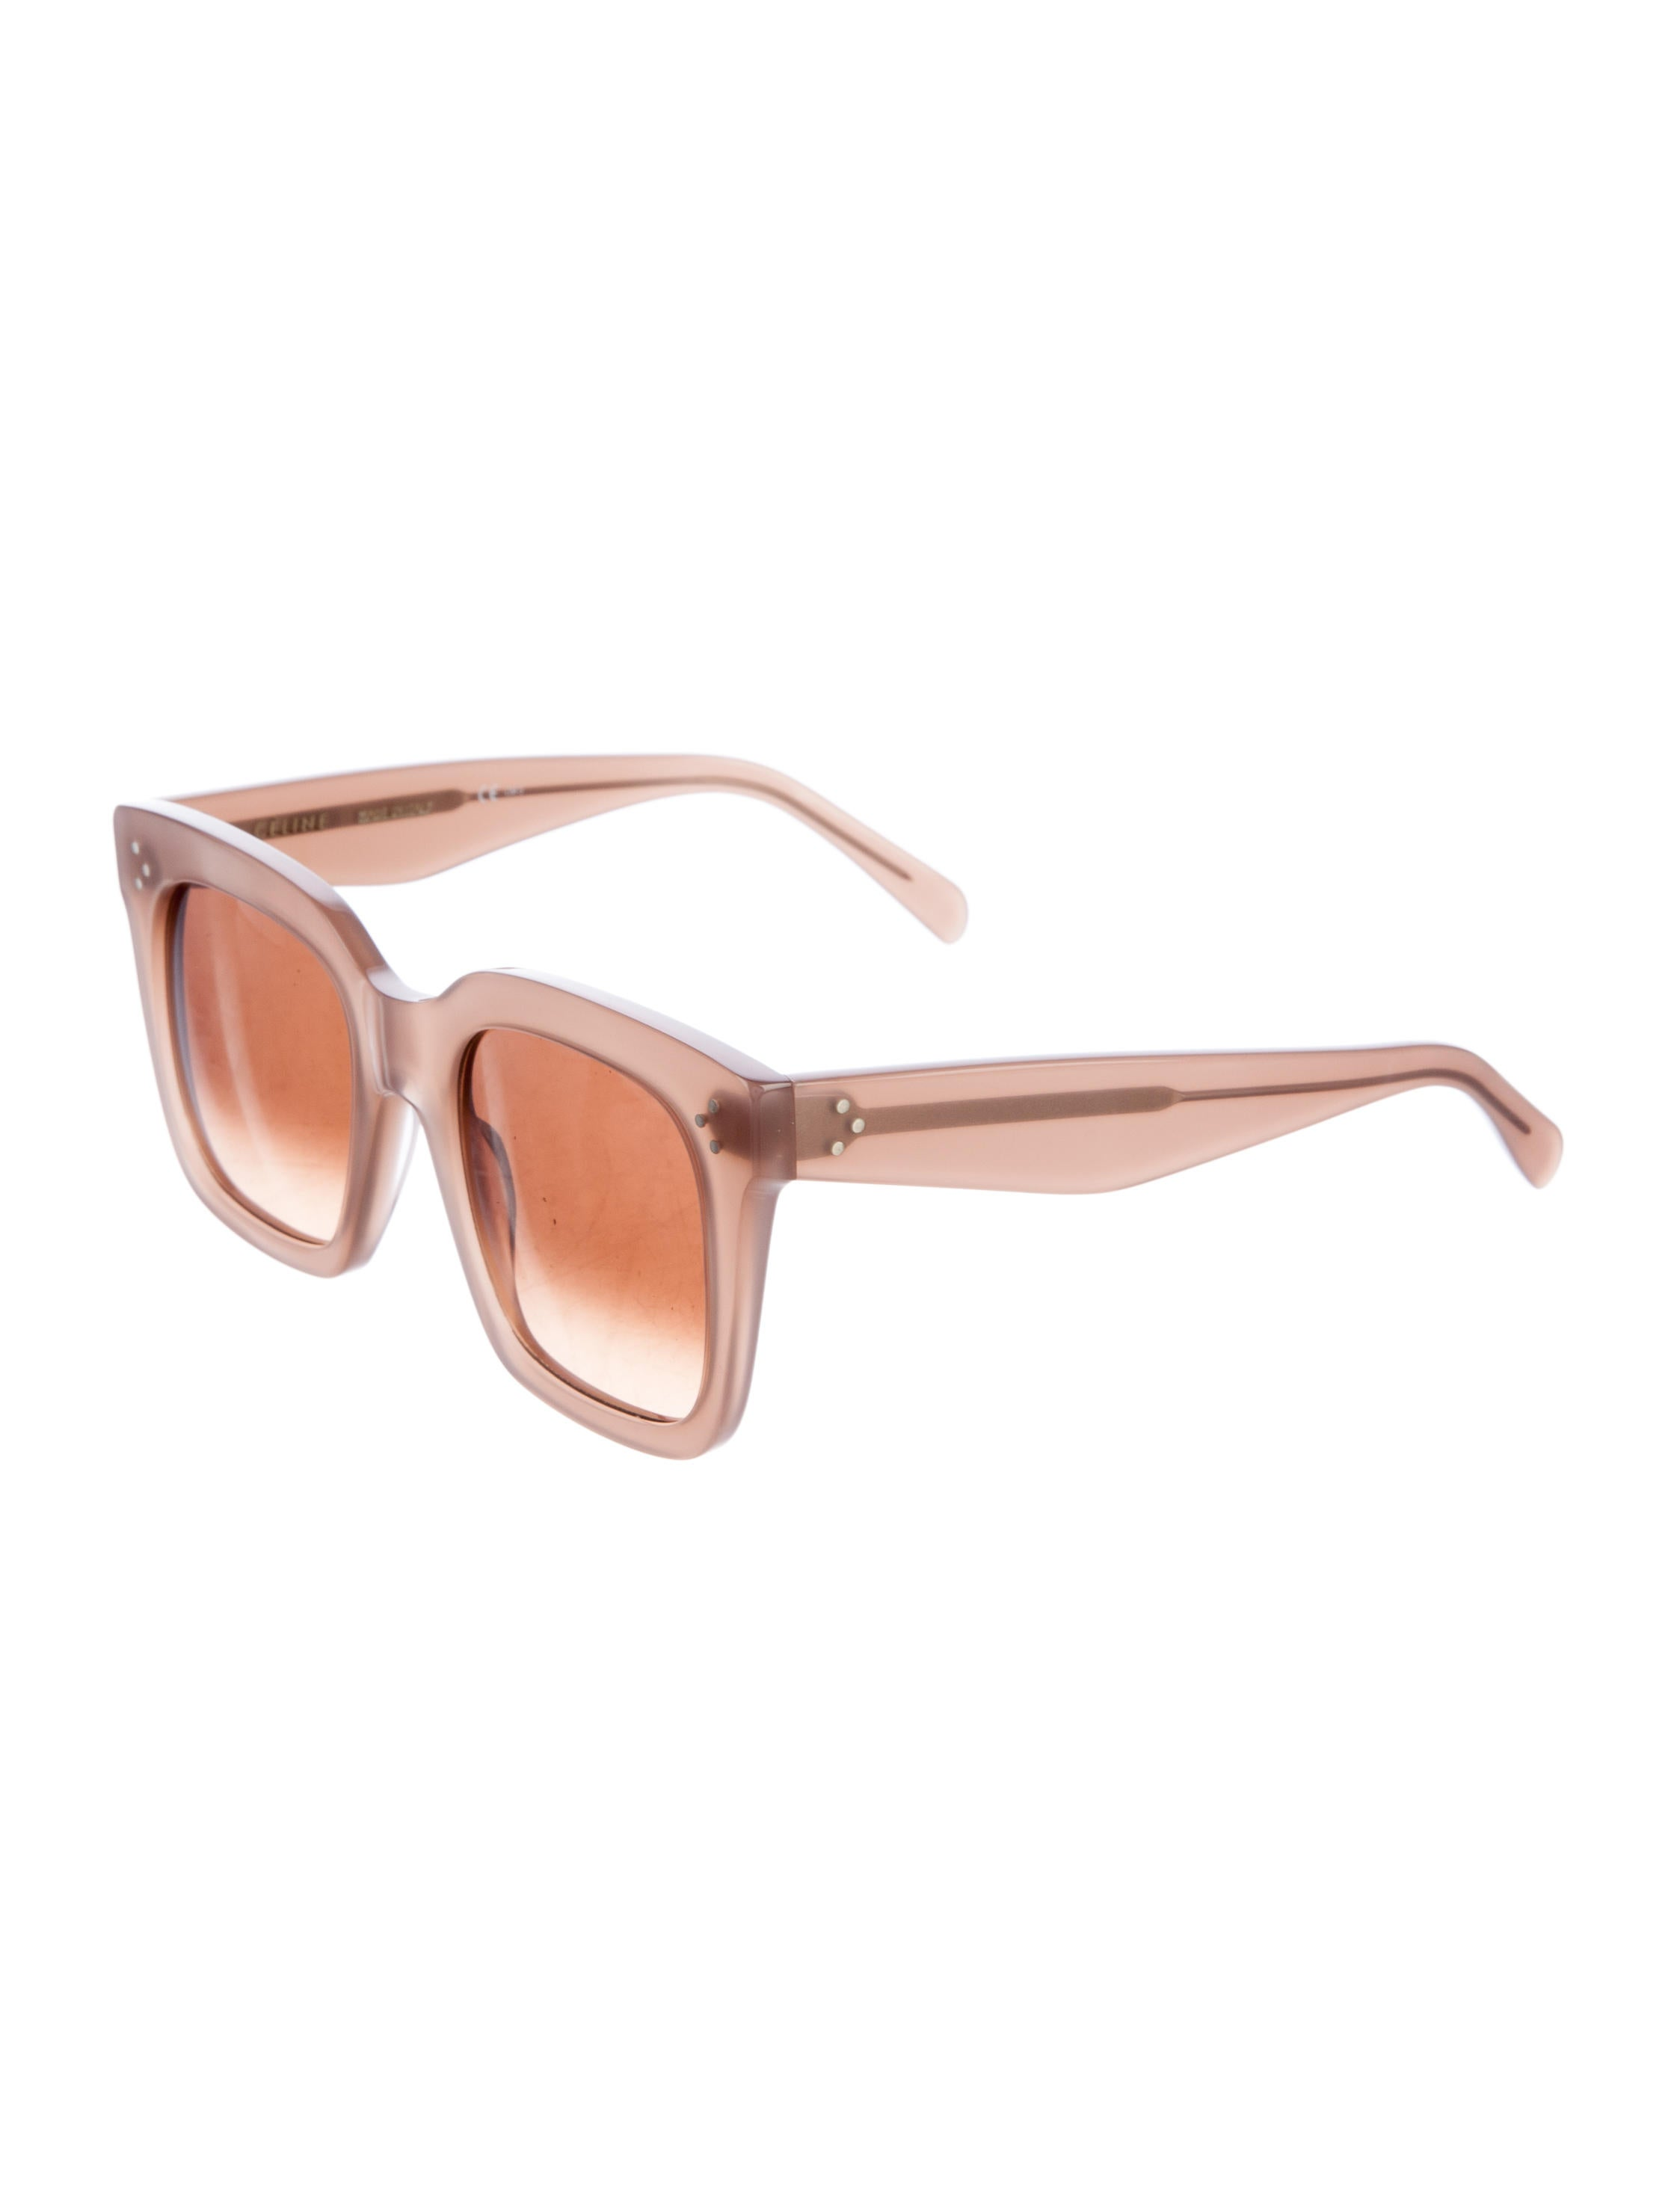 9de76ade85 Céline Tilda Sunglasses - Accessories - CEL51729